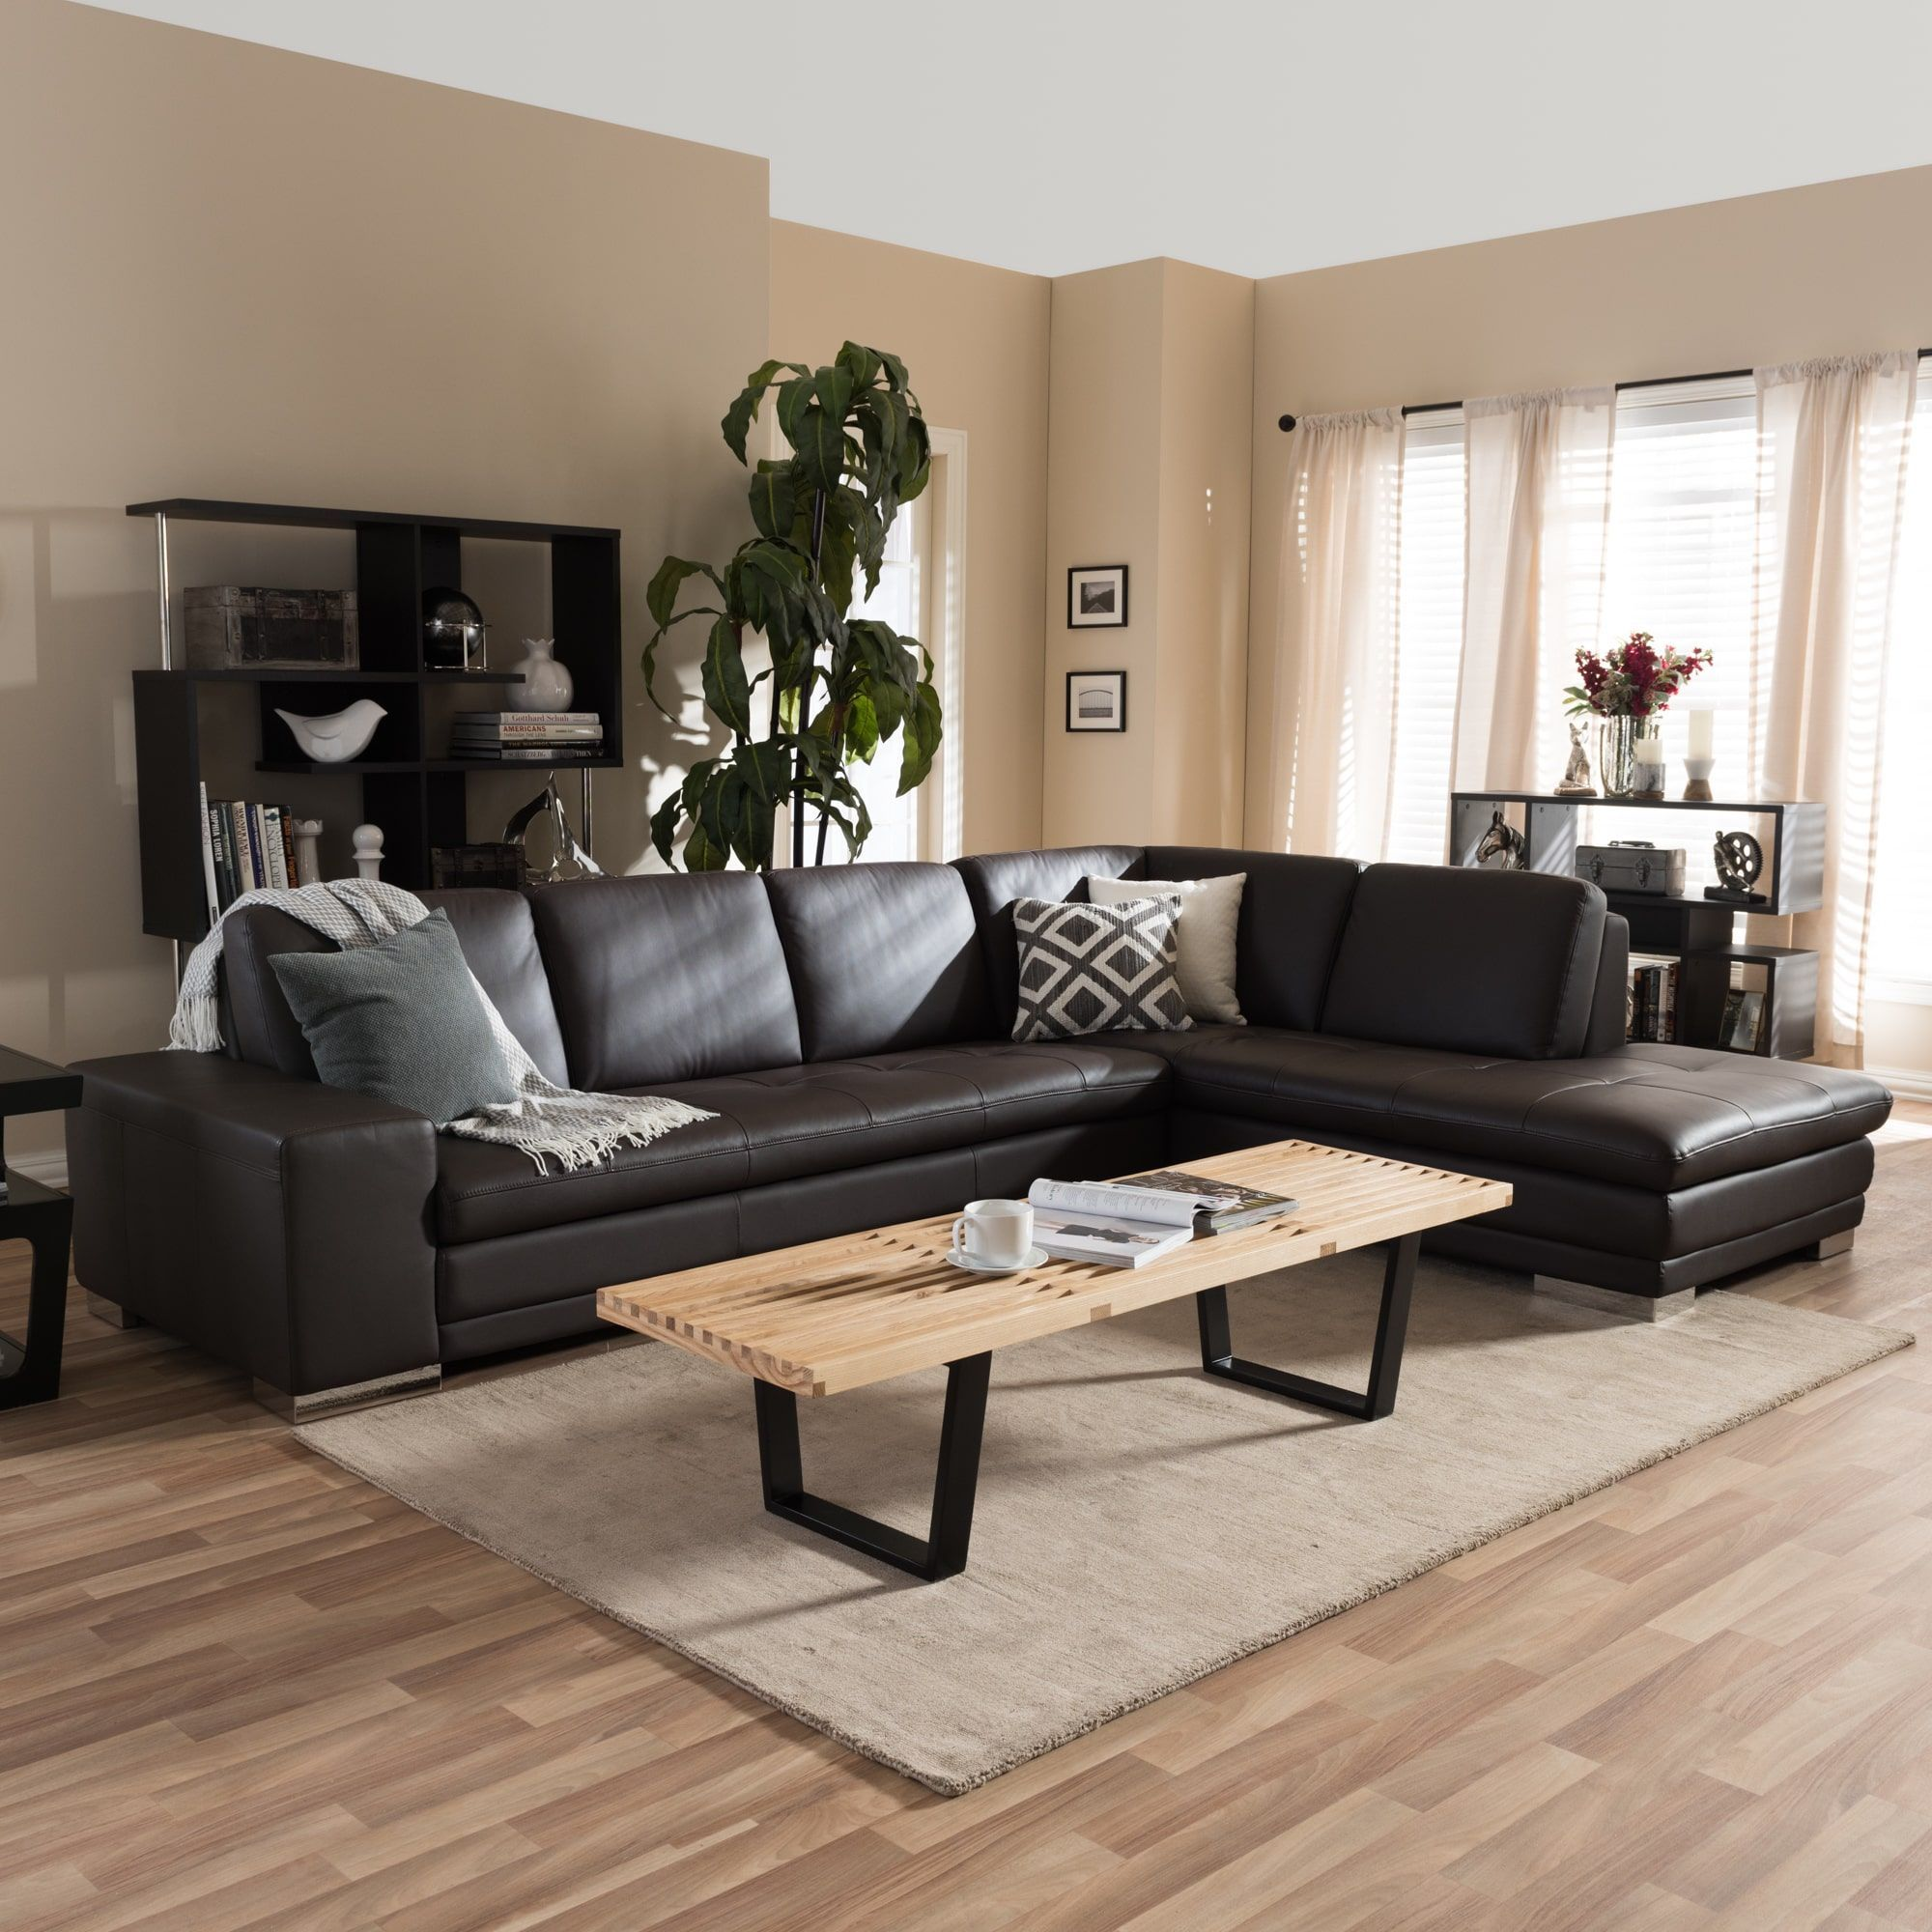 Admirable Larry Dark Brown Sectional Sofa Chaise Set Products Cjindustries Chair Design For Home Cjindustriesco